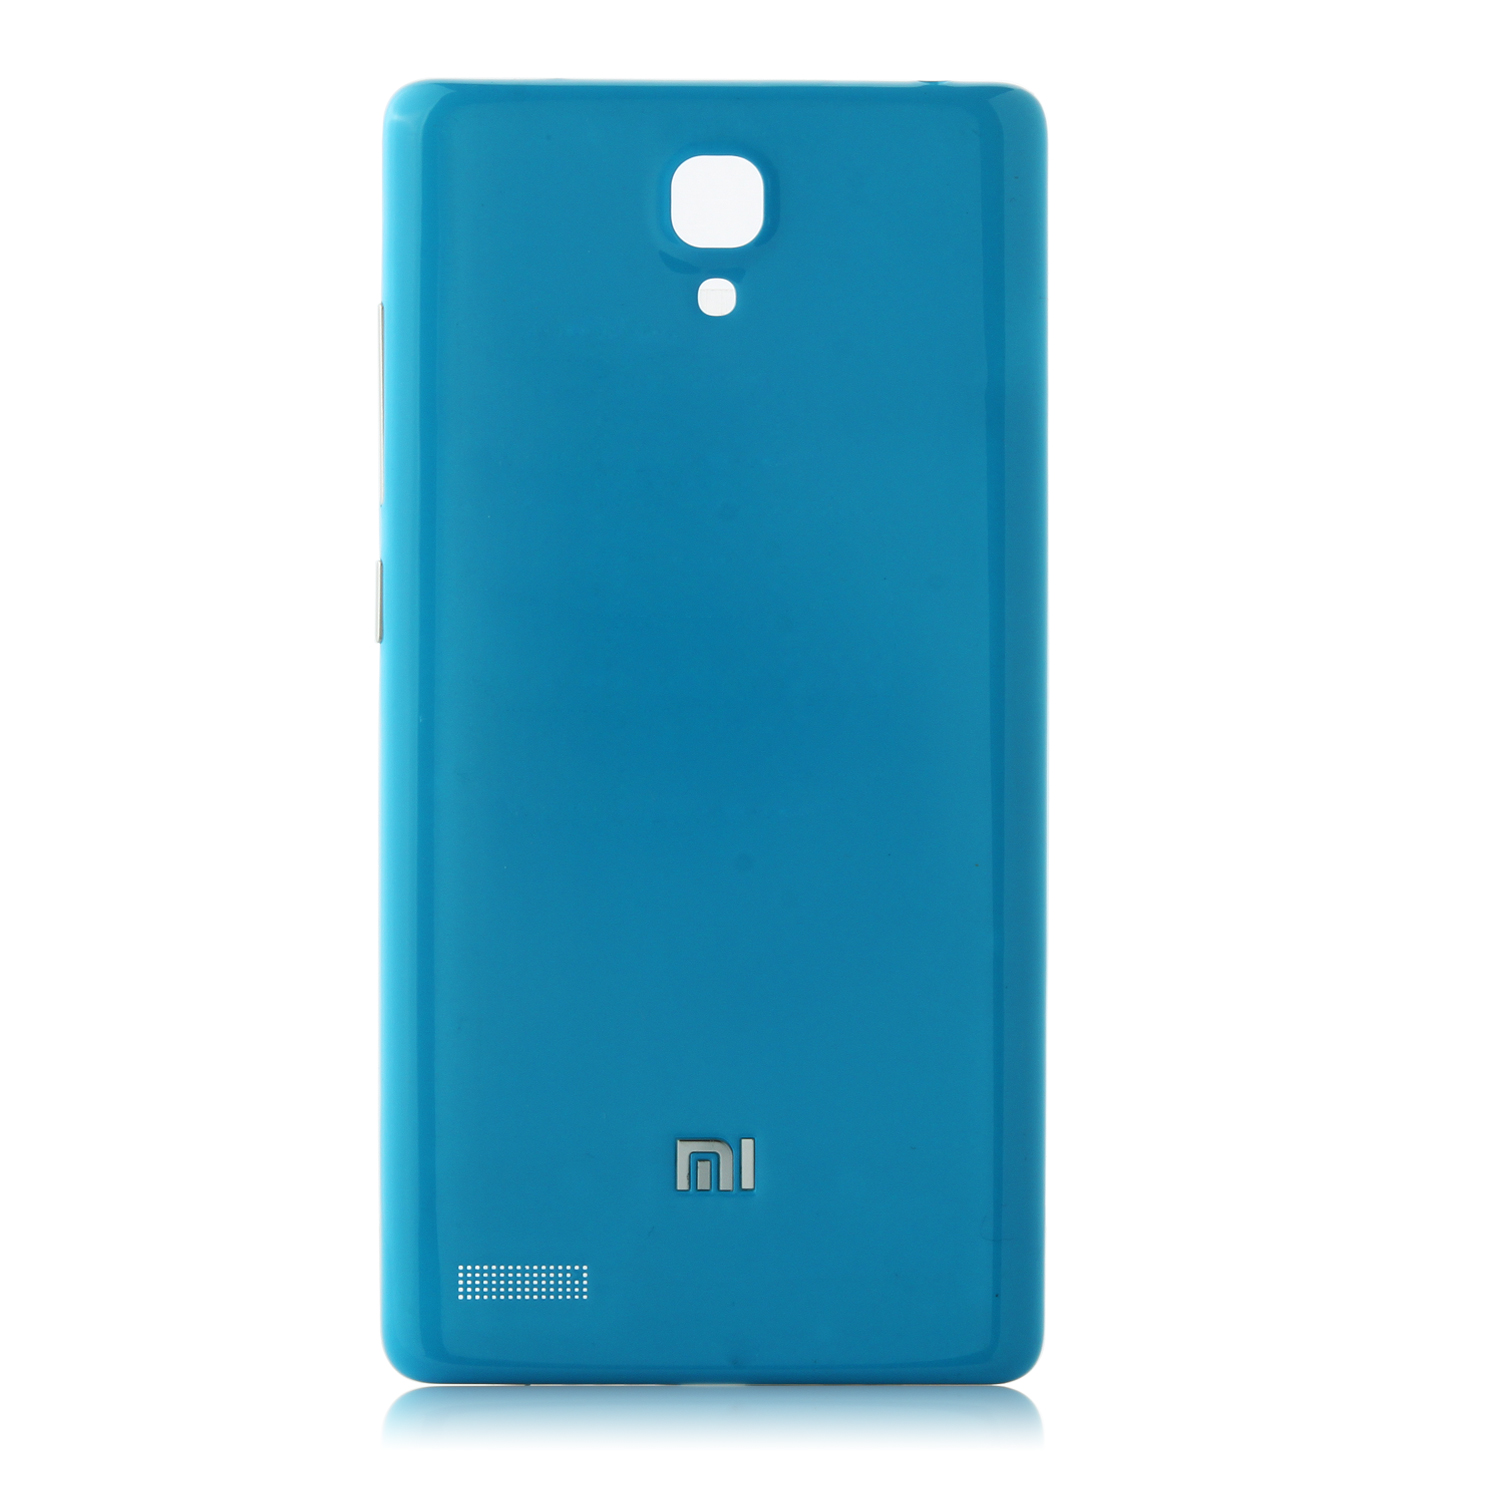 Battery Cover Back Case for XIAOMI Redmi Note Smartphone Dark Blue